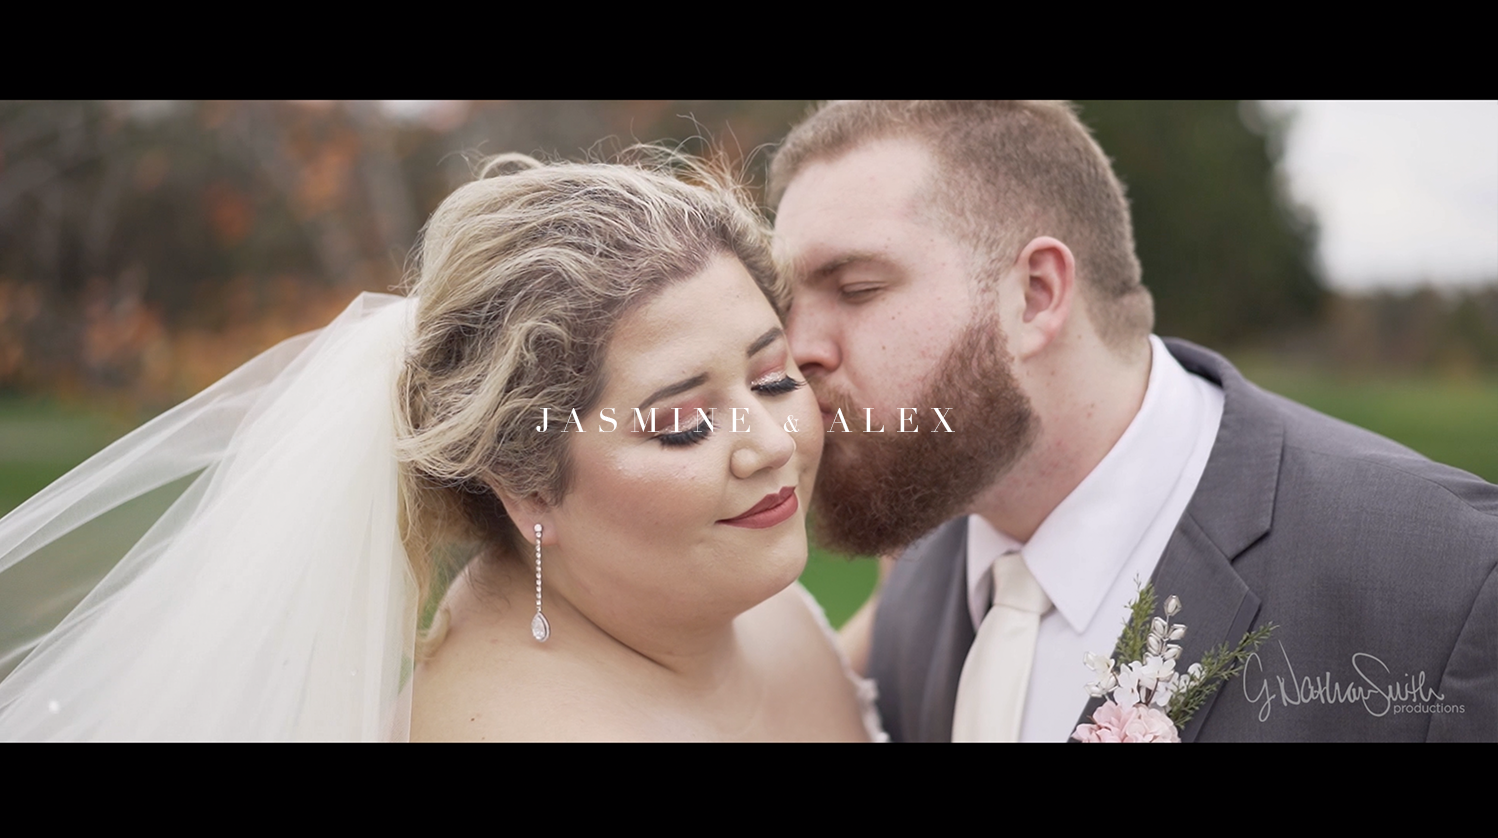 Jasmine + Alex | Haymarket, Virginia | piedmont country club